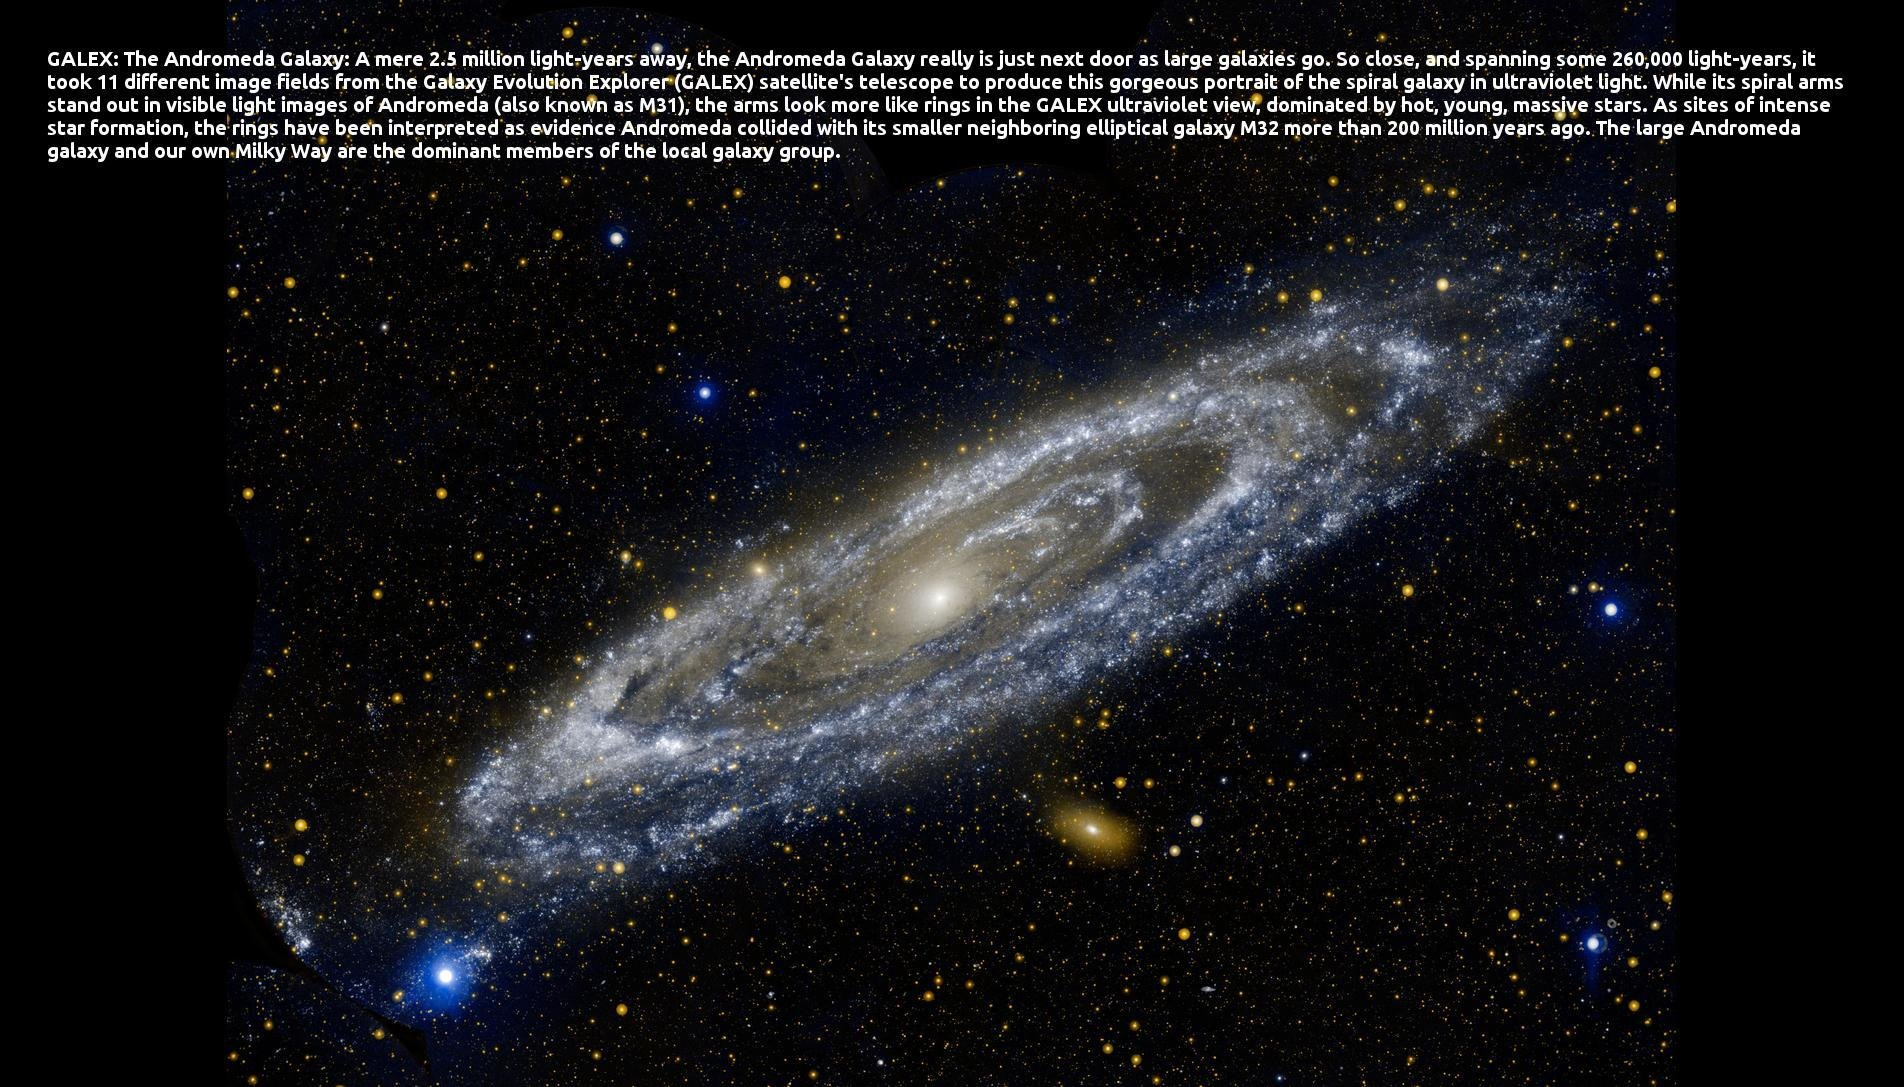 Desktop Background from Nasa APOD | SourceForge.net